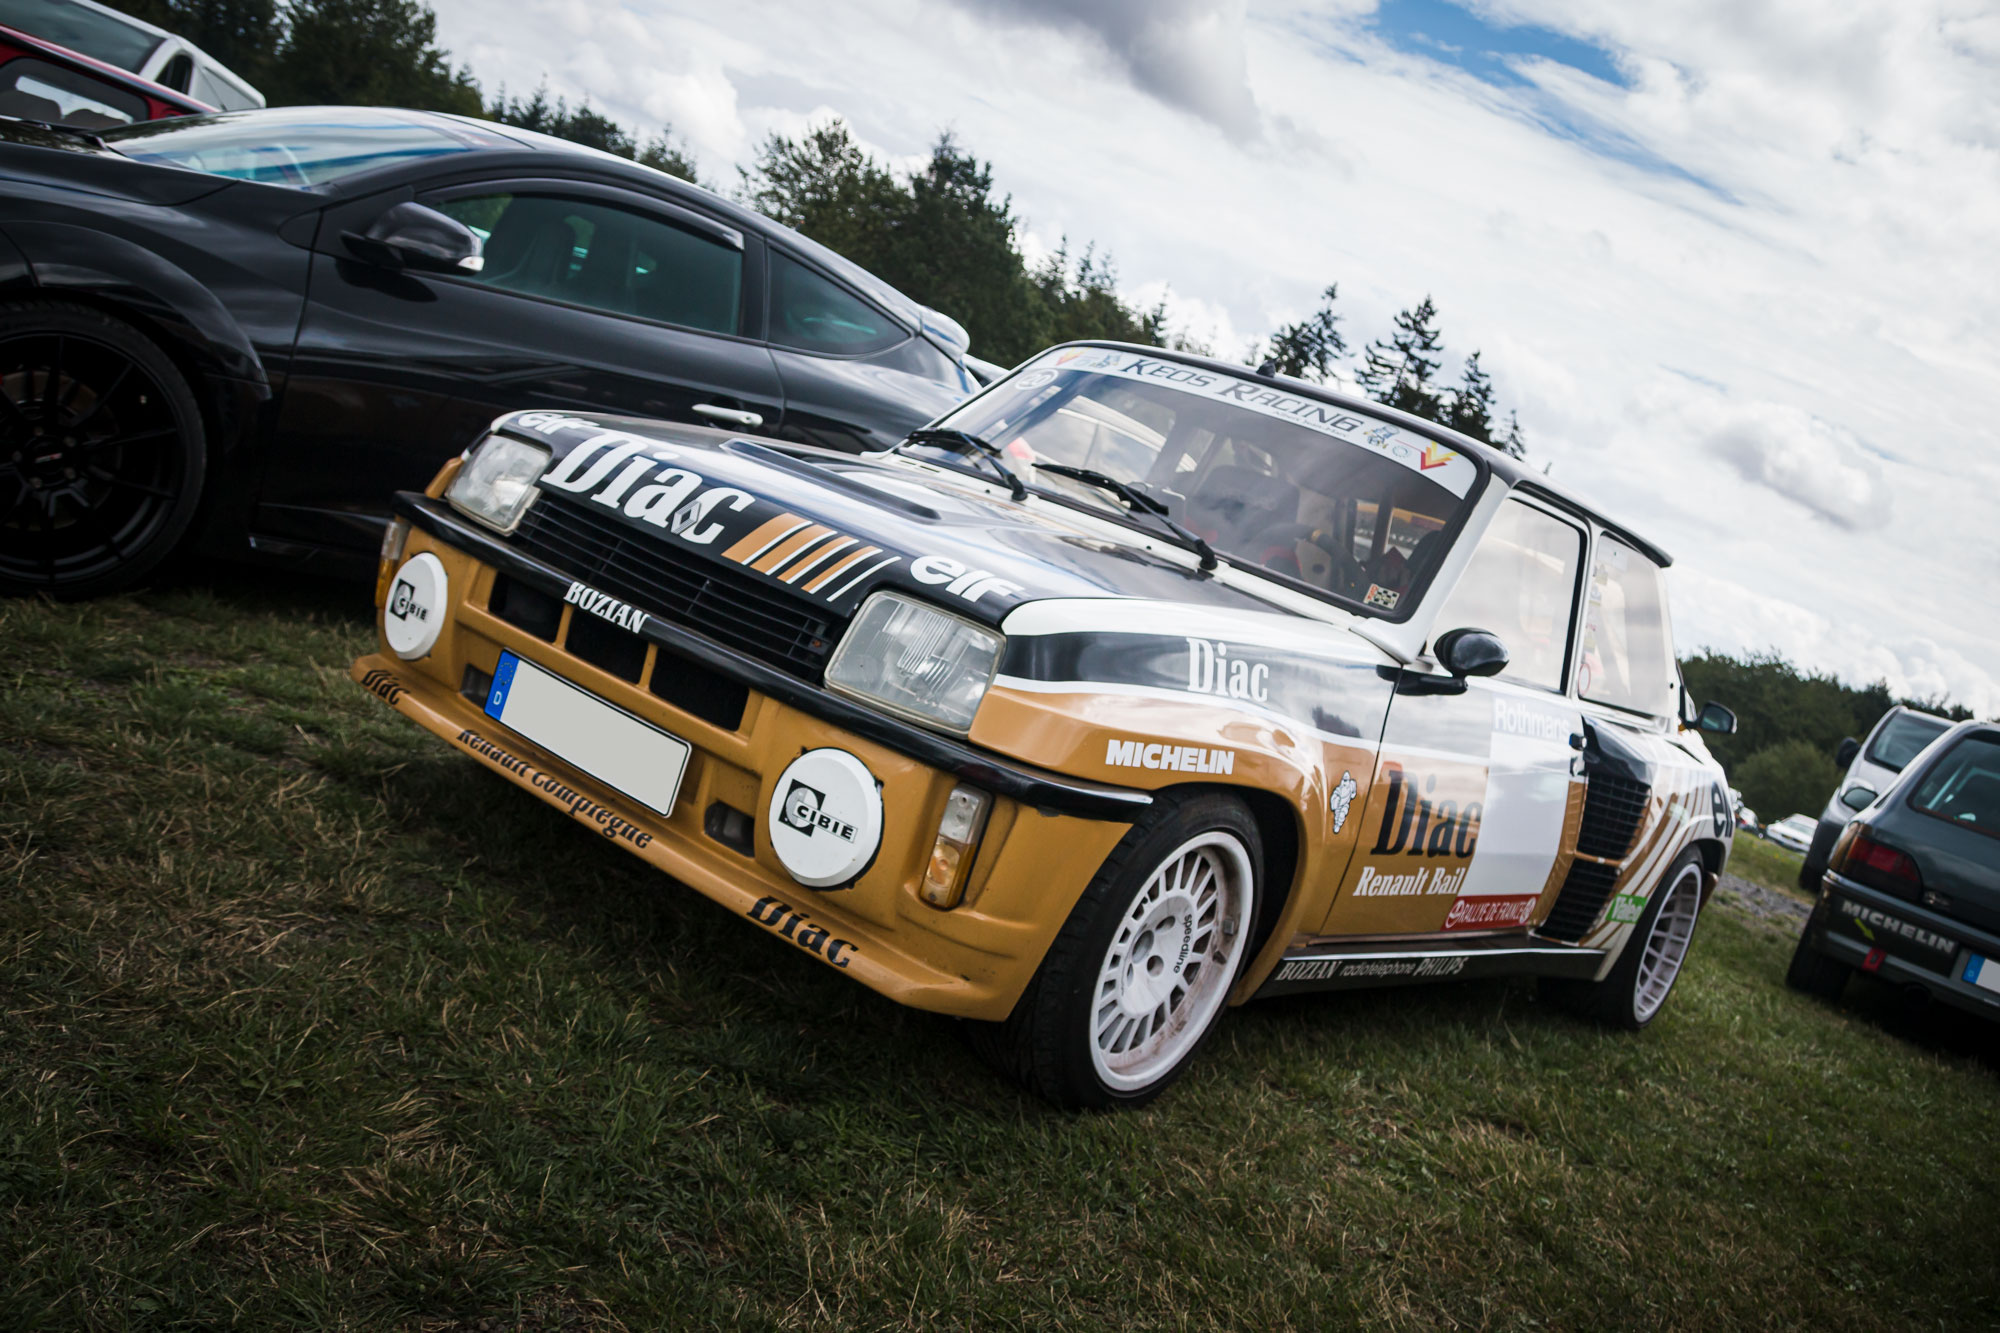 Renault 5 Turbo - D'ARC Sommerfest 2019 am Nürburgring